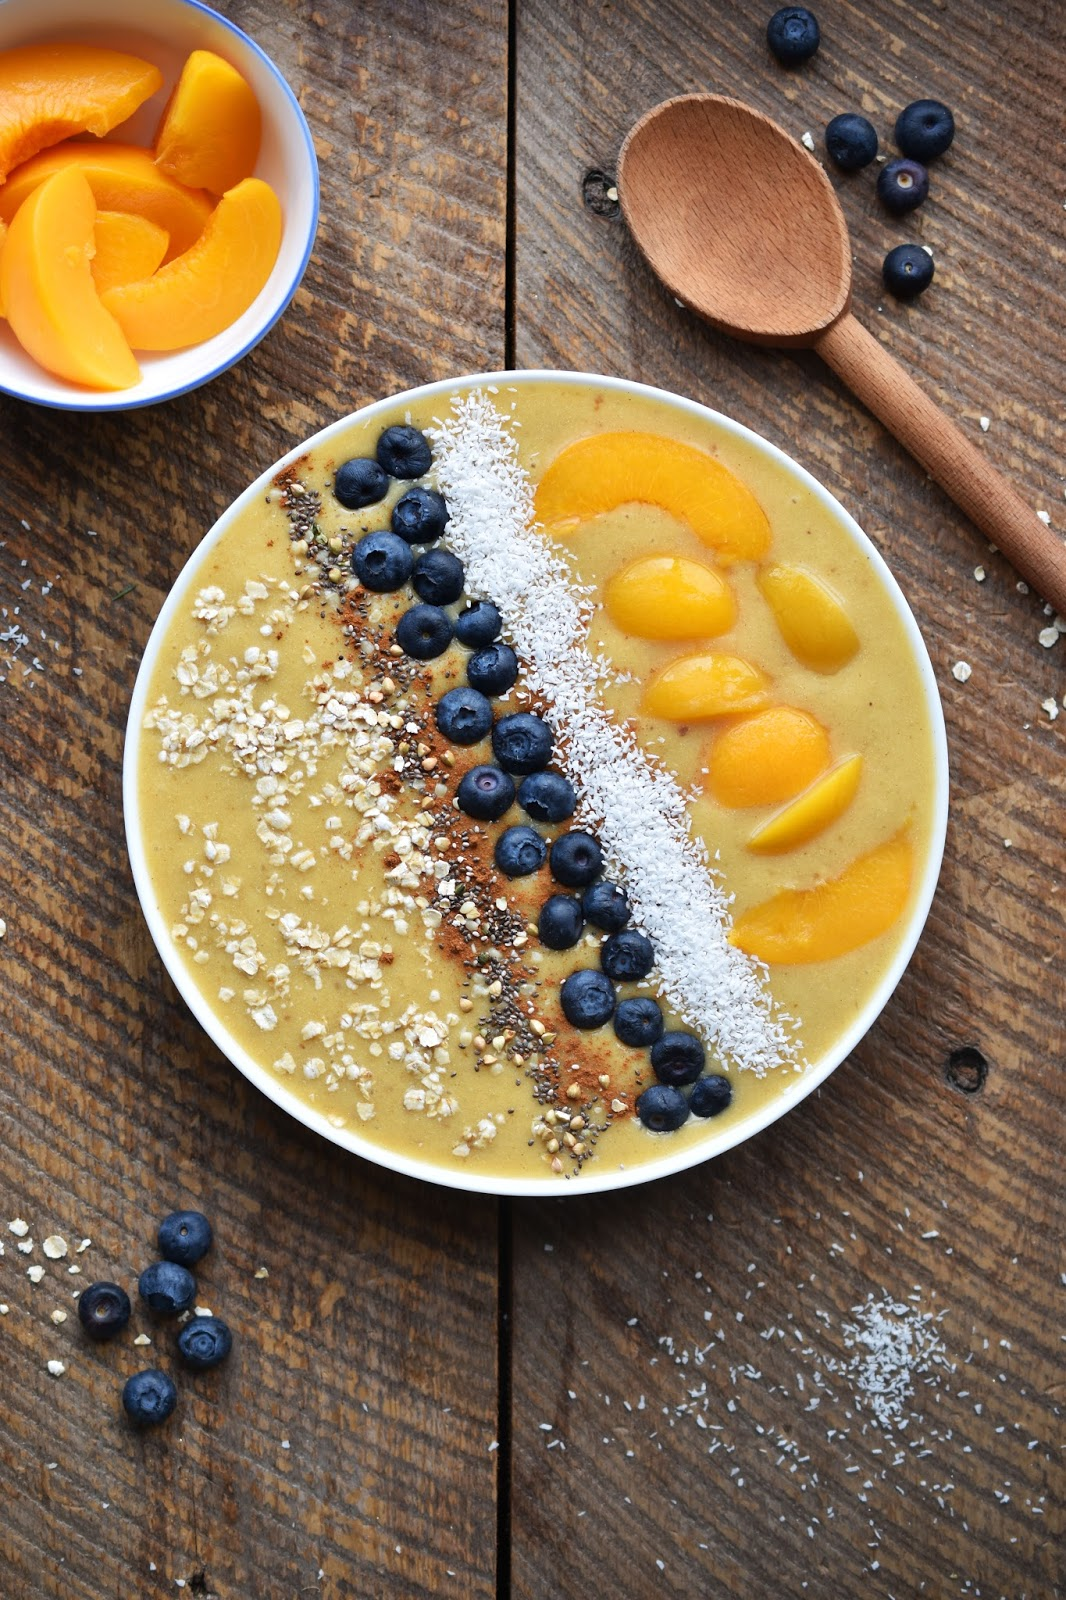 Peach Pie Smoothie Bowl - the New Year's #healthy answer to peach pie, with canned peaches (handy in winter!), a touch of decadent coconut cream & toppings like coconut, blueberries, oats & cinnamon. #vegan #glutenfree #bowls #smoothies #smoothiebowls